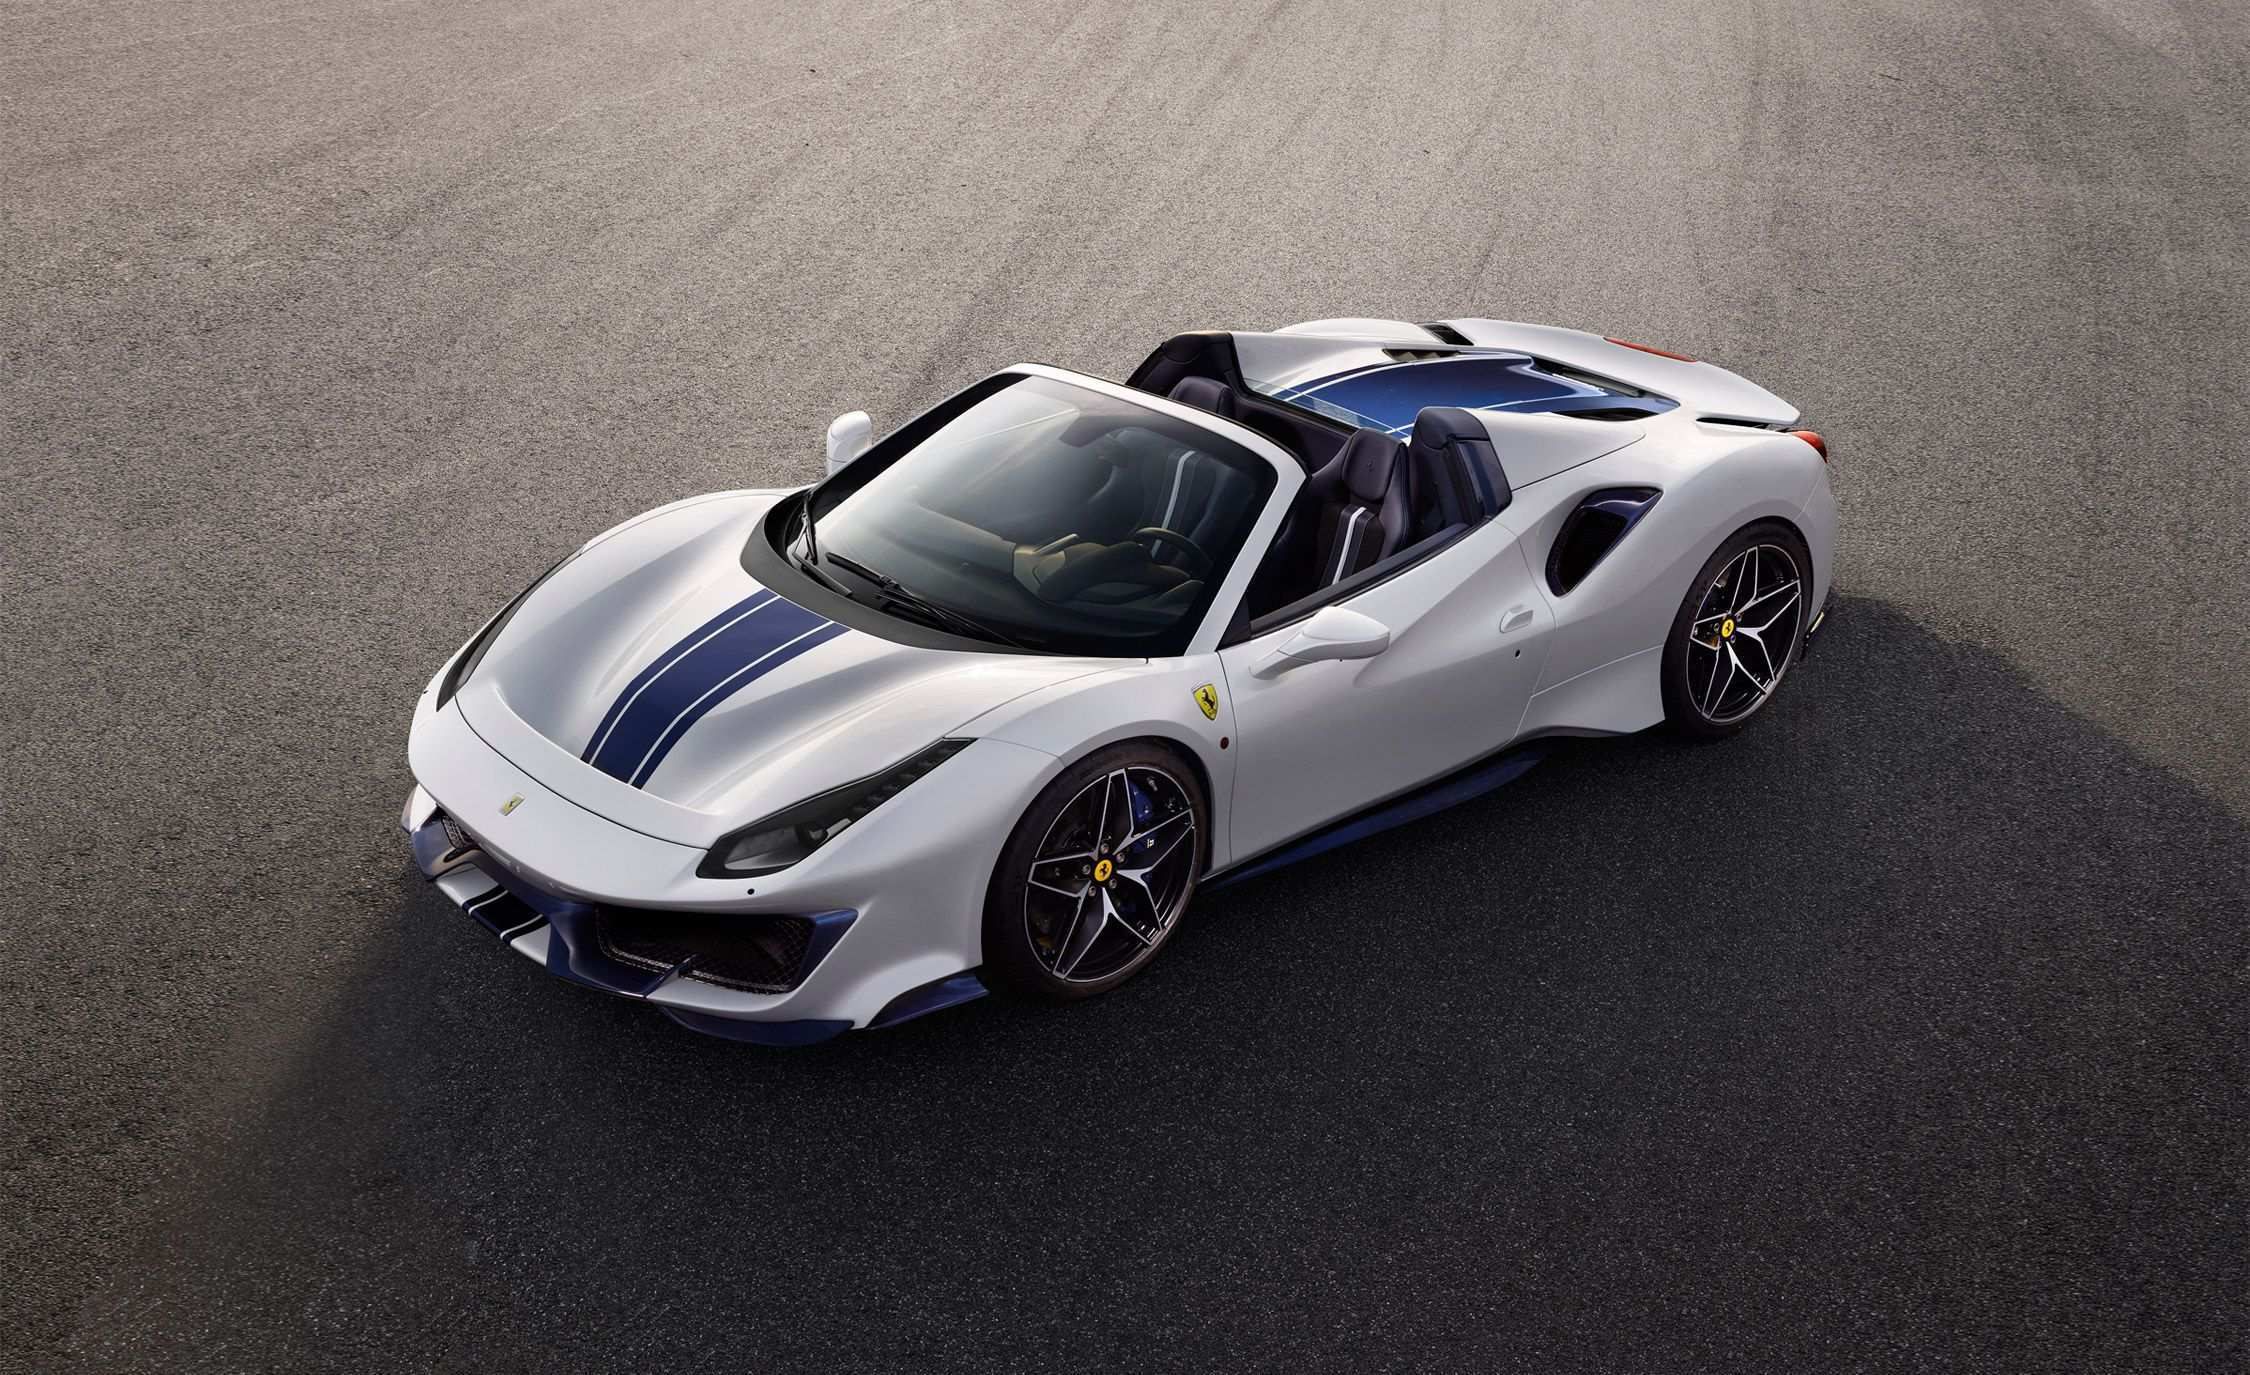 51 New 2019 Ferrari Charger Wallpaper by 2019 Ferrari Charger